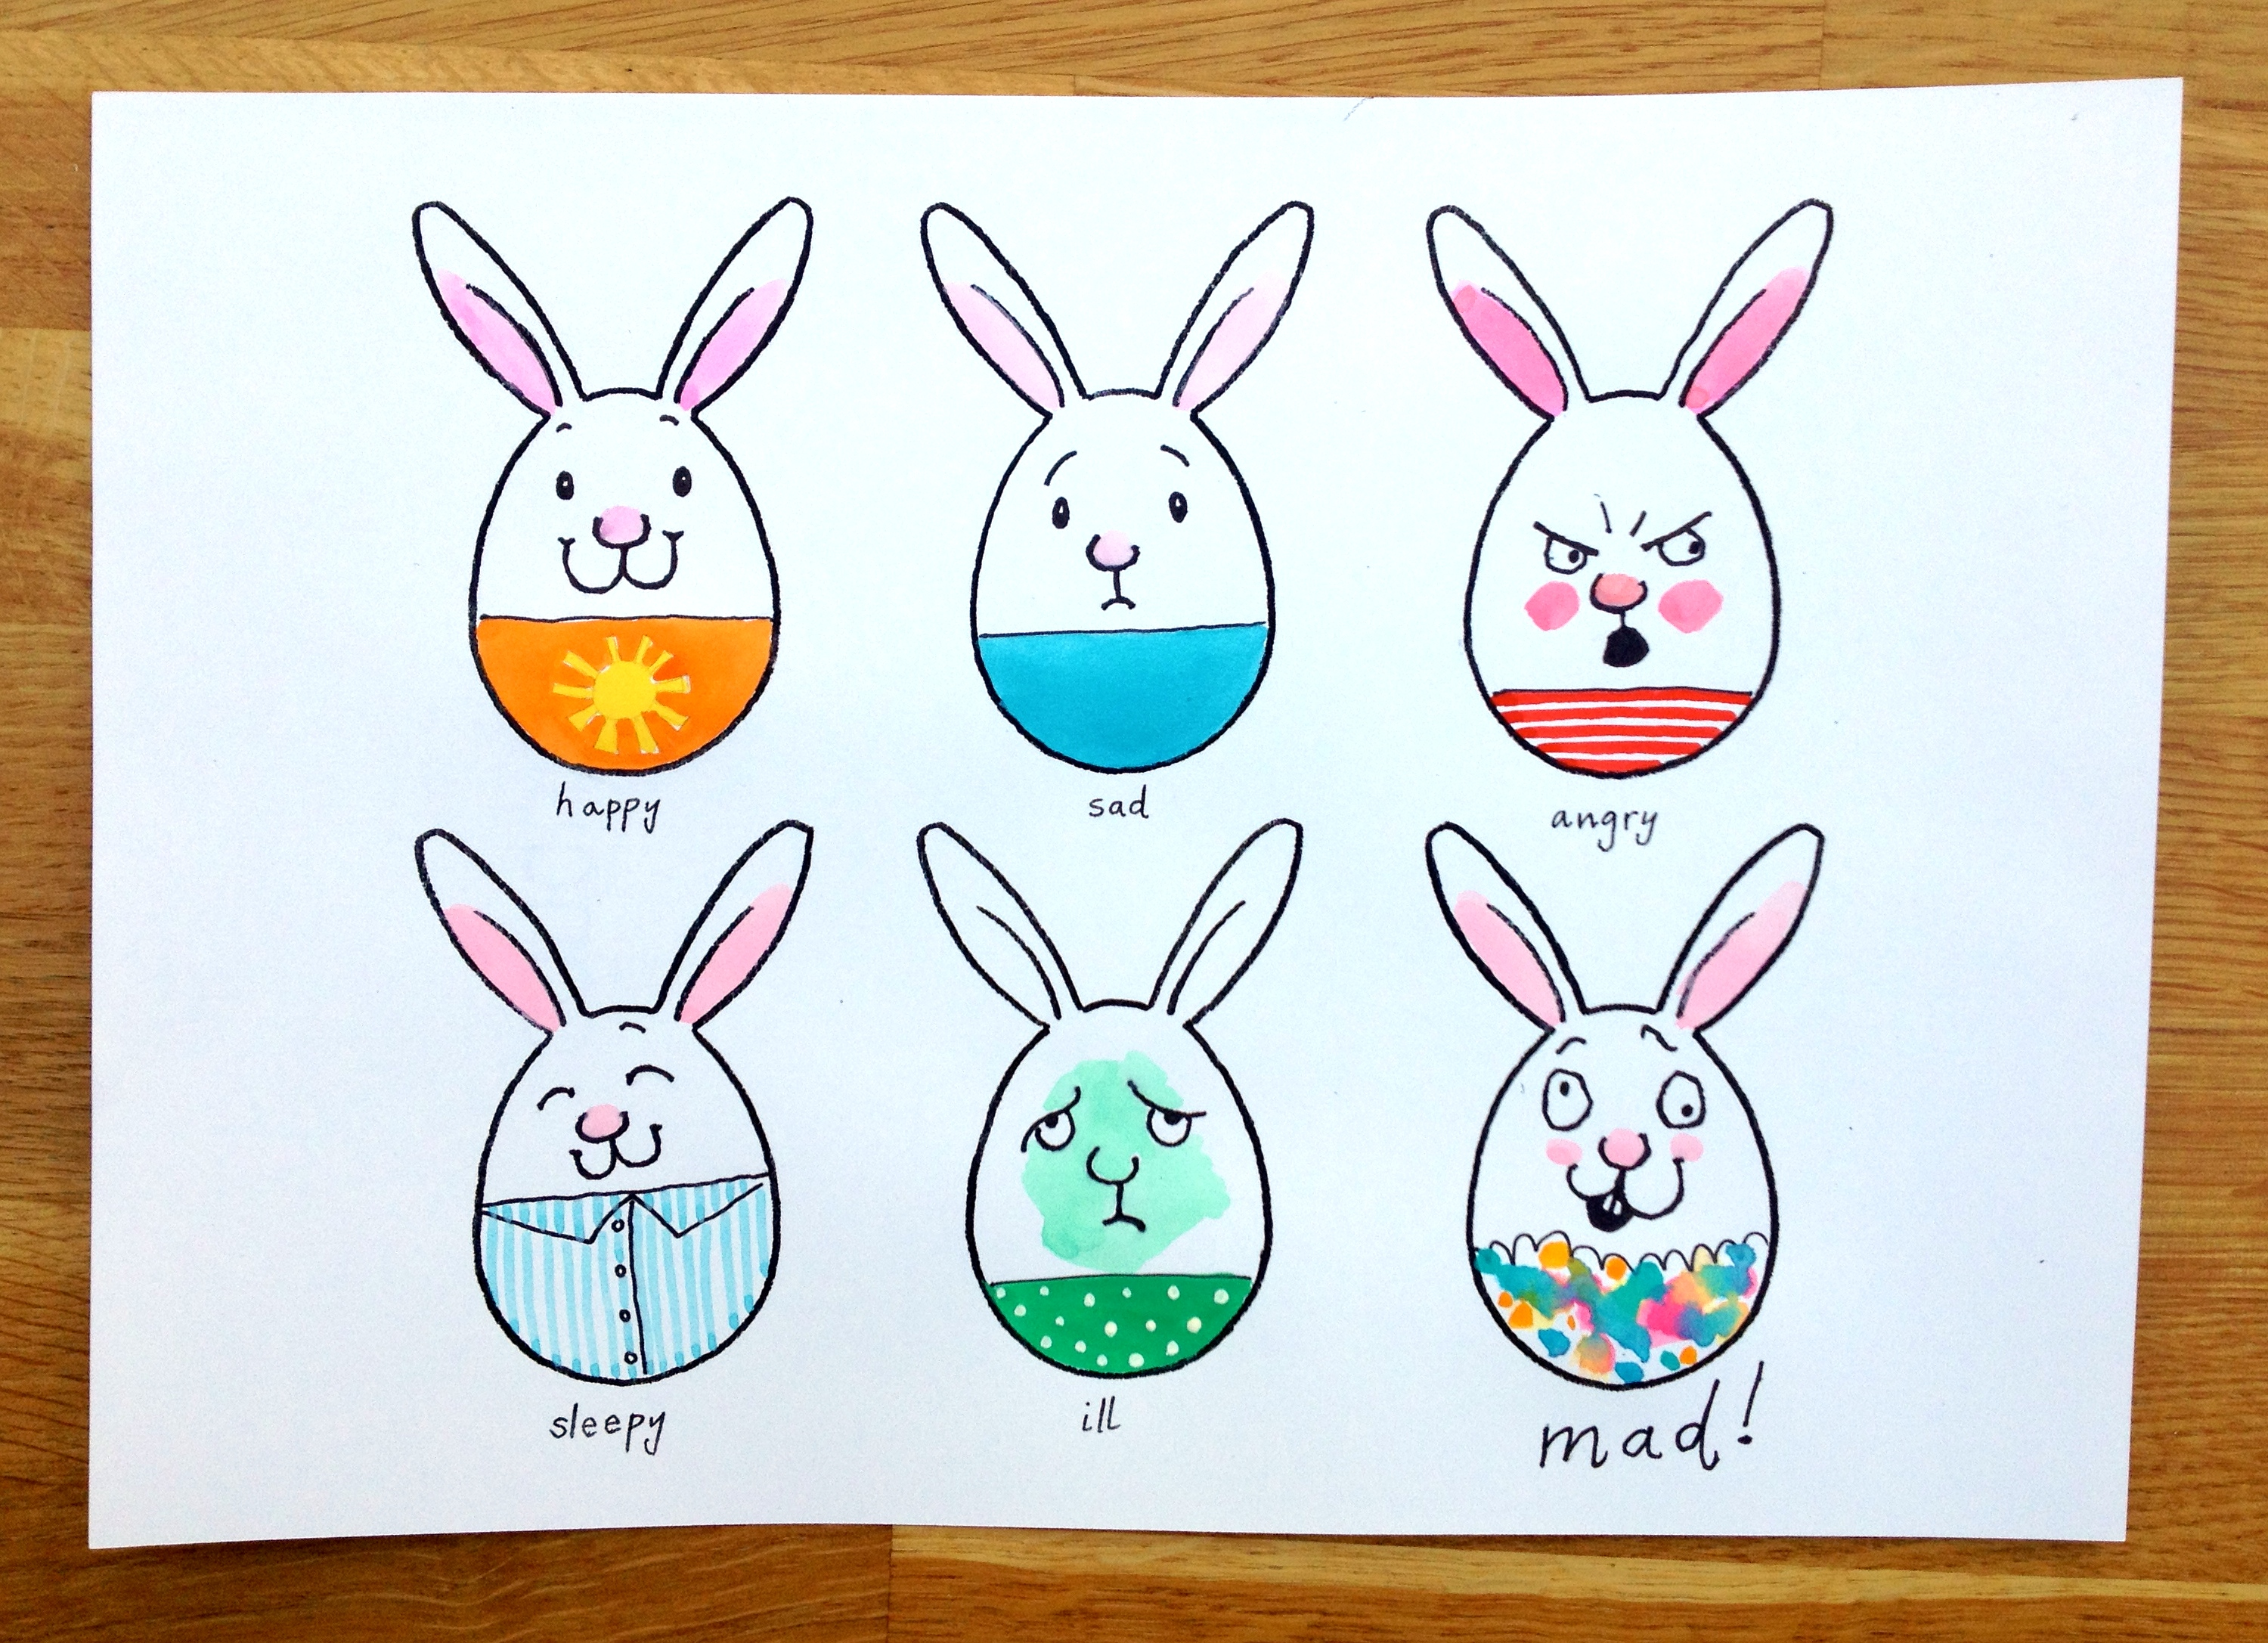 Martha's bunny faces drawing game